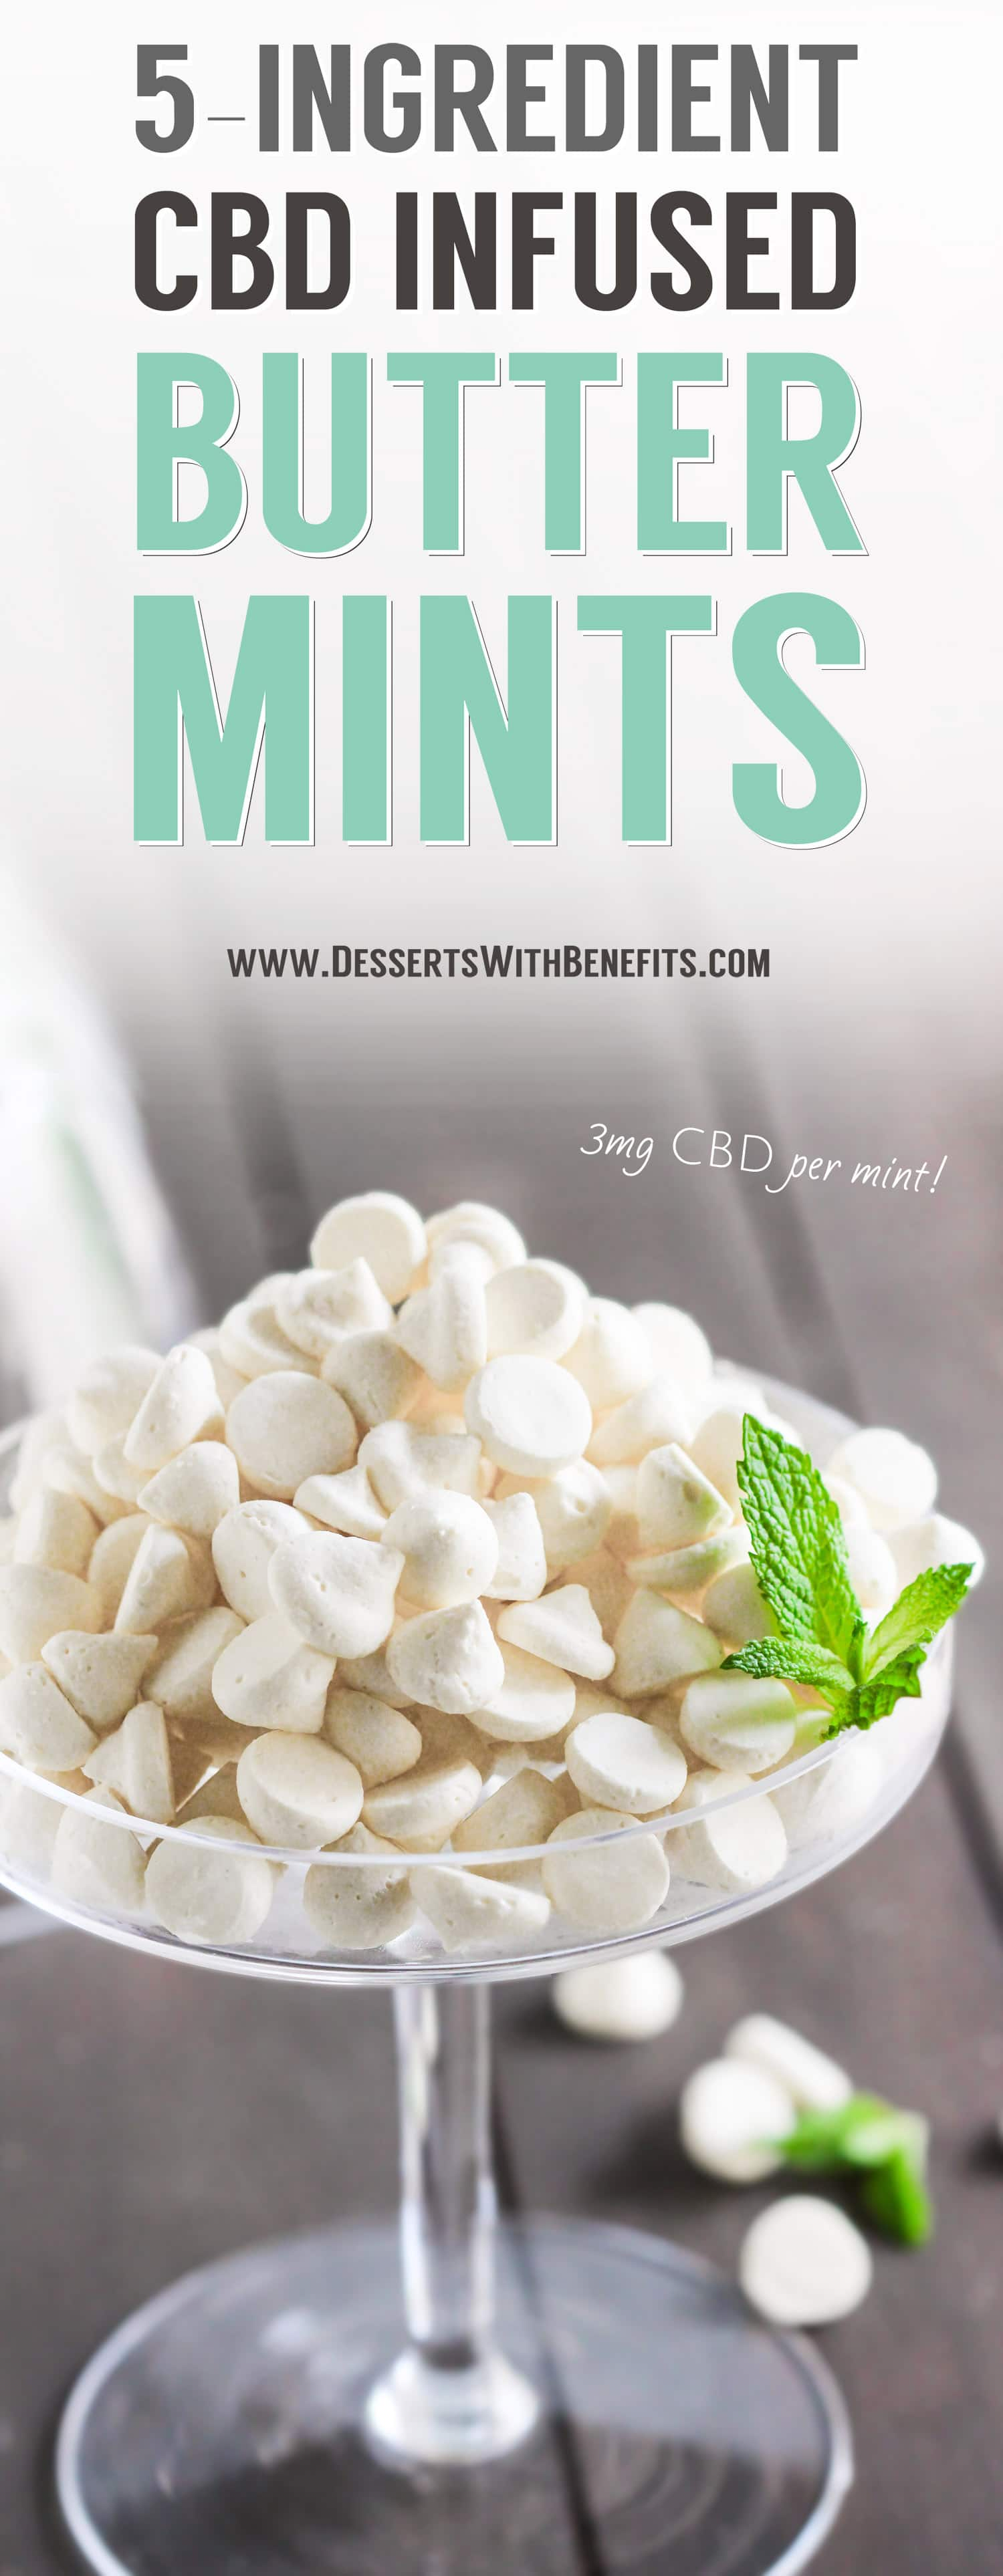 Homemade Butter Mints made with only 5 ingredients! Super easy to make, sweet, and minty fresh. Like bites of frosting! You'd never know these DIY Butter Mints are sugar free, low carb, and gluten free… with a secret ingredient! Healthy Cannabis-Infused Recipes and Homemade Edibles at the Desserts With Benefits Blog (www.DessertsWithBenefits.com). Get baked, guilt free!